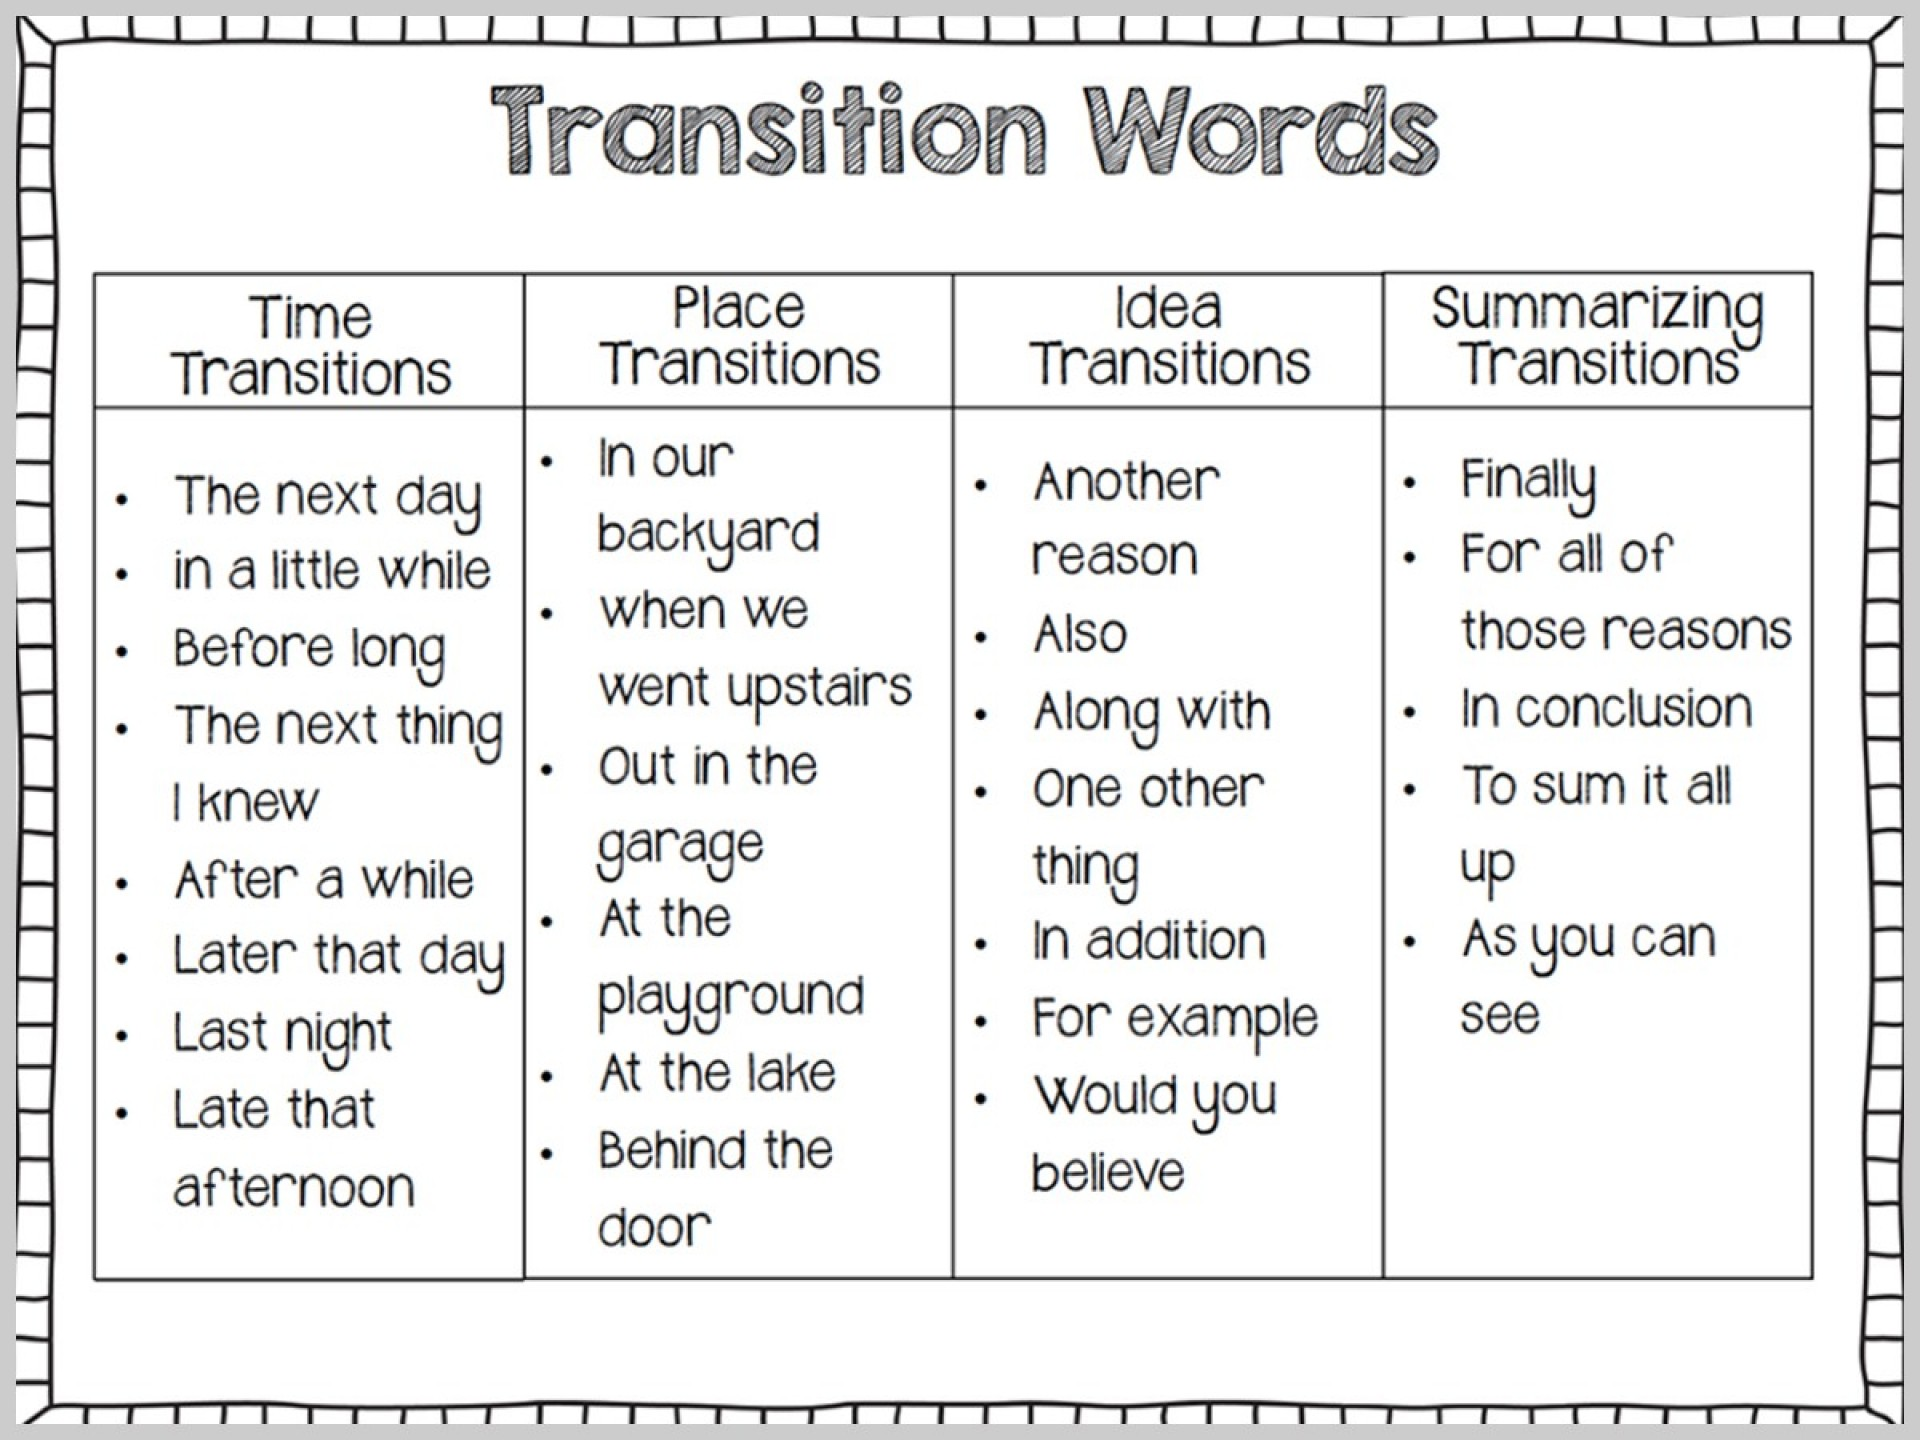 example of transition words using commas